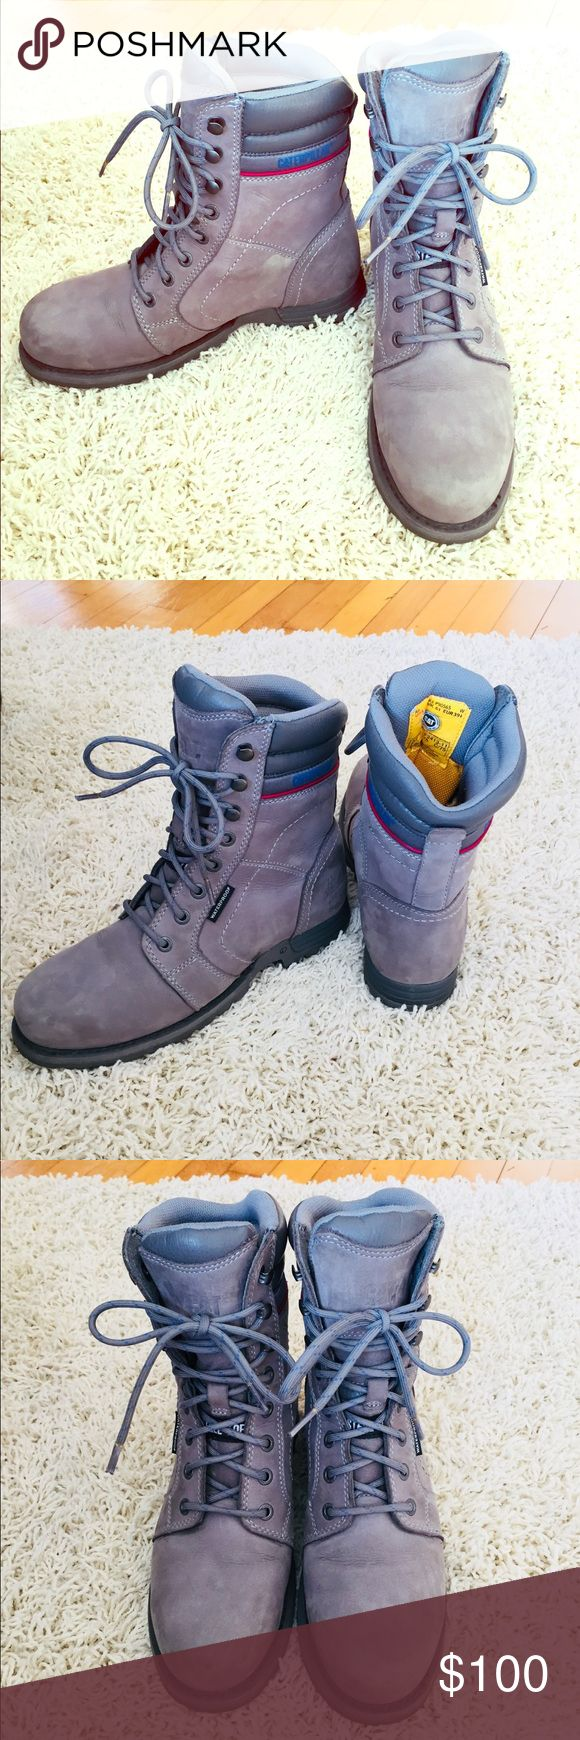 """Caterpillar ECHO steel-toe work boot (grey) Impeccable used condition! These lace up boot from Caterpillar were a gift, and only worn a handful of times. Adorable, stylish, extremely comfortable and a great, warm boot for winter. The tall silhouette provides maximum coverage in quality, protection and superior flexibility. FEATURES: Waterproof nubuck leather upper, 6"""" shaft, Padded collar, Round steel toe, Electrical hazard protection, Nylex™ sock lining, Cement + Goodyear welt construction…"""